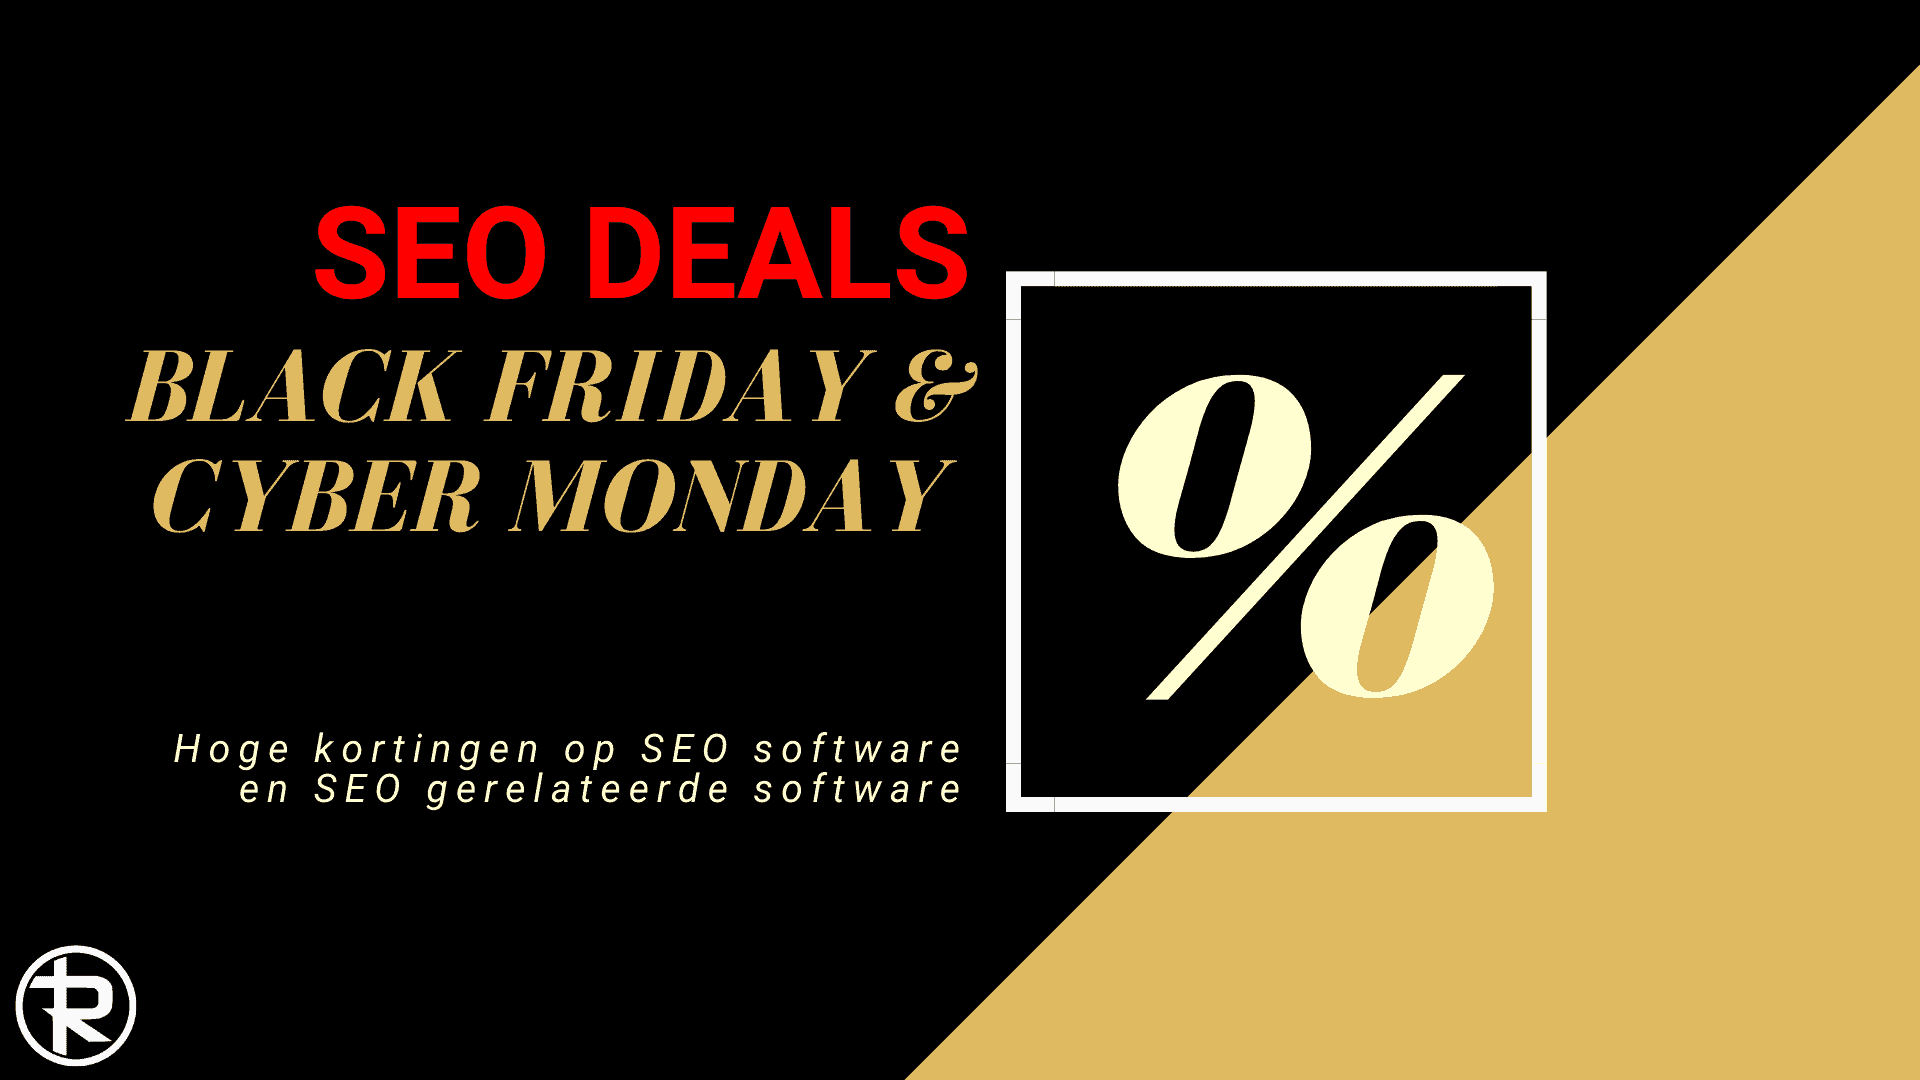 seo deals black friday en cyber monday